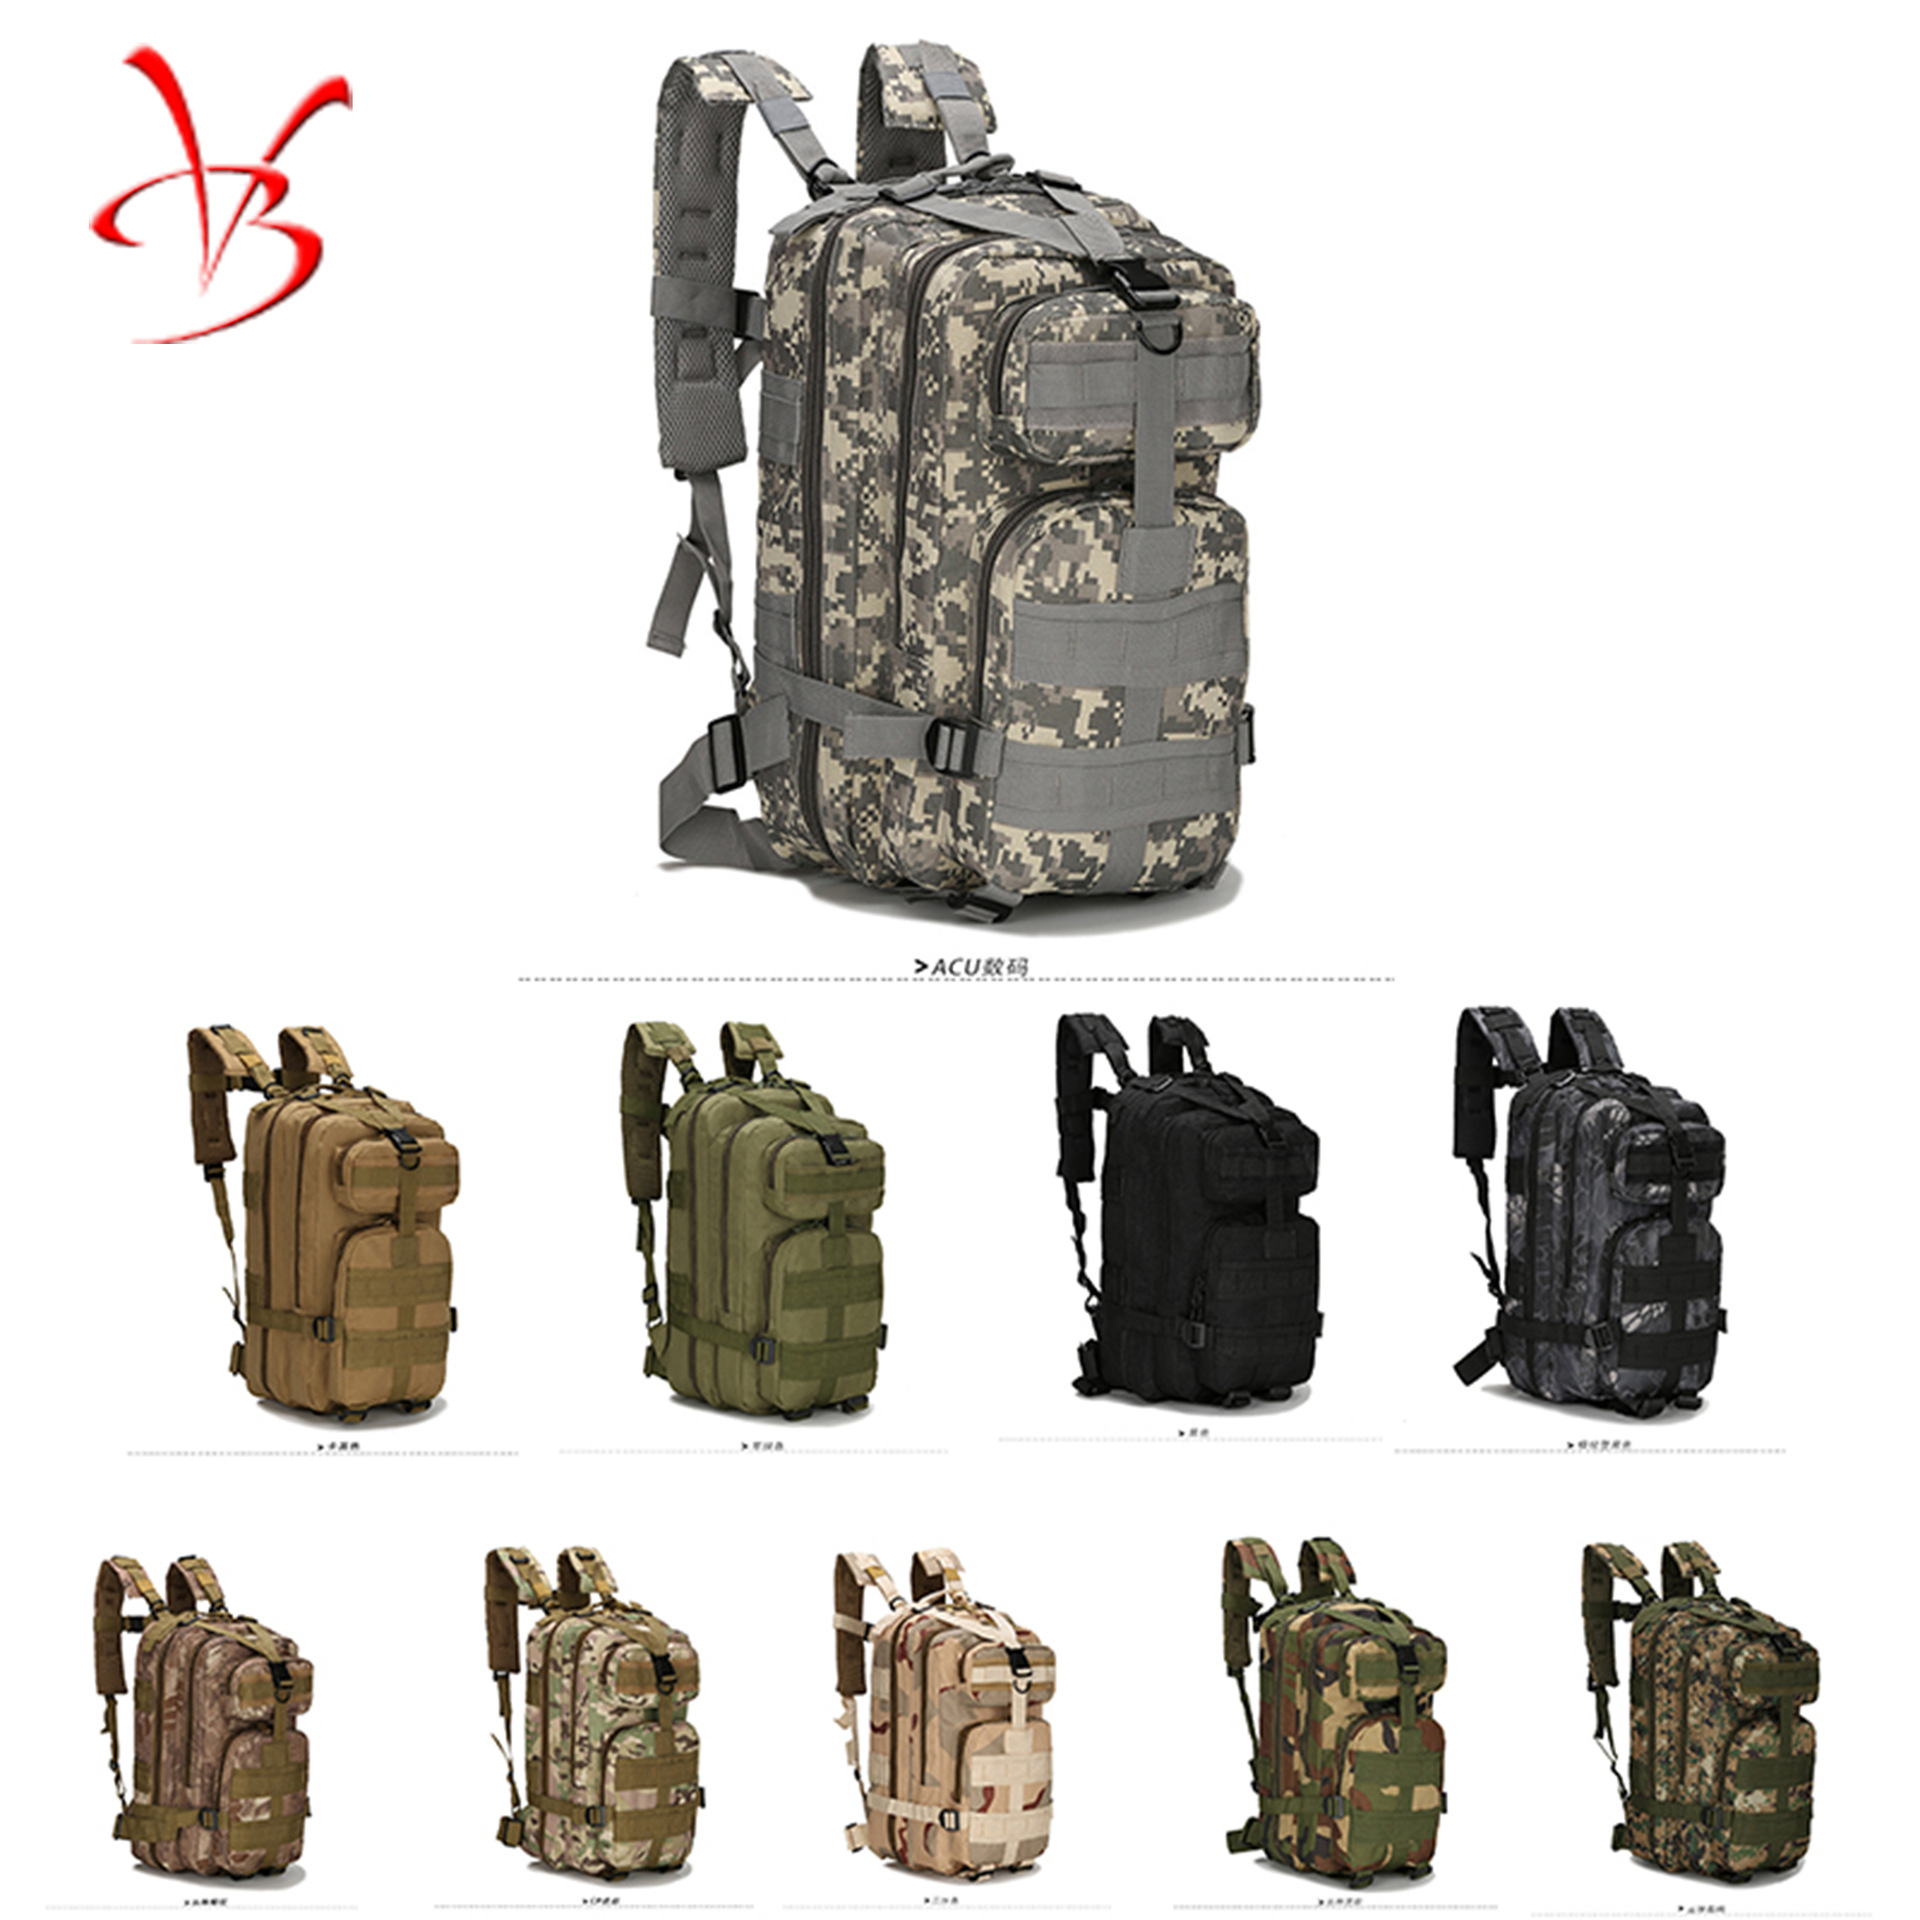 Foreign Trade Hot Selling 3 P Backpack Army Fans Tactical Bag Outdoor Sports Hiking Bag 30L Oxford Waterproof Camouflage Bag Who